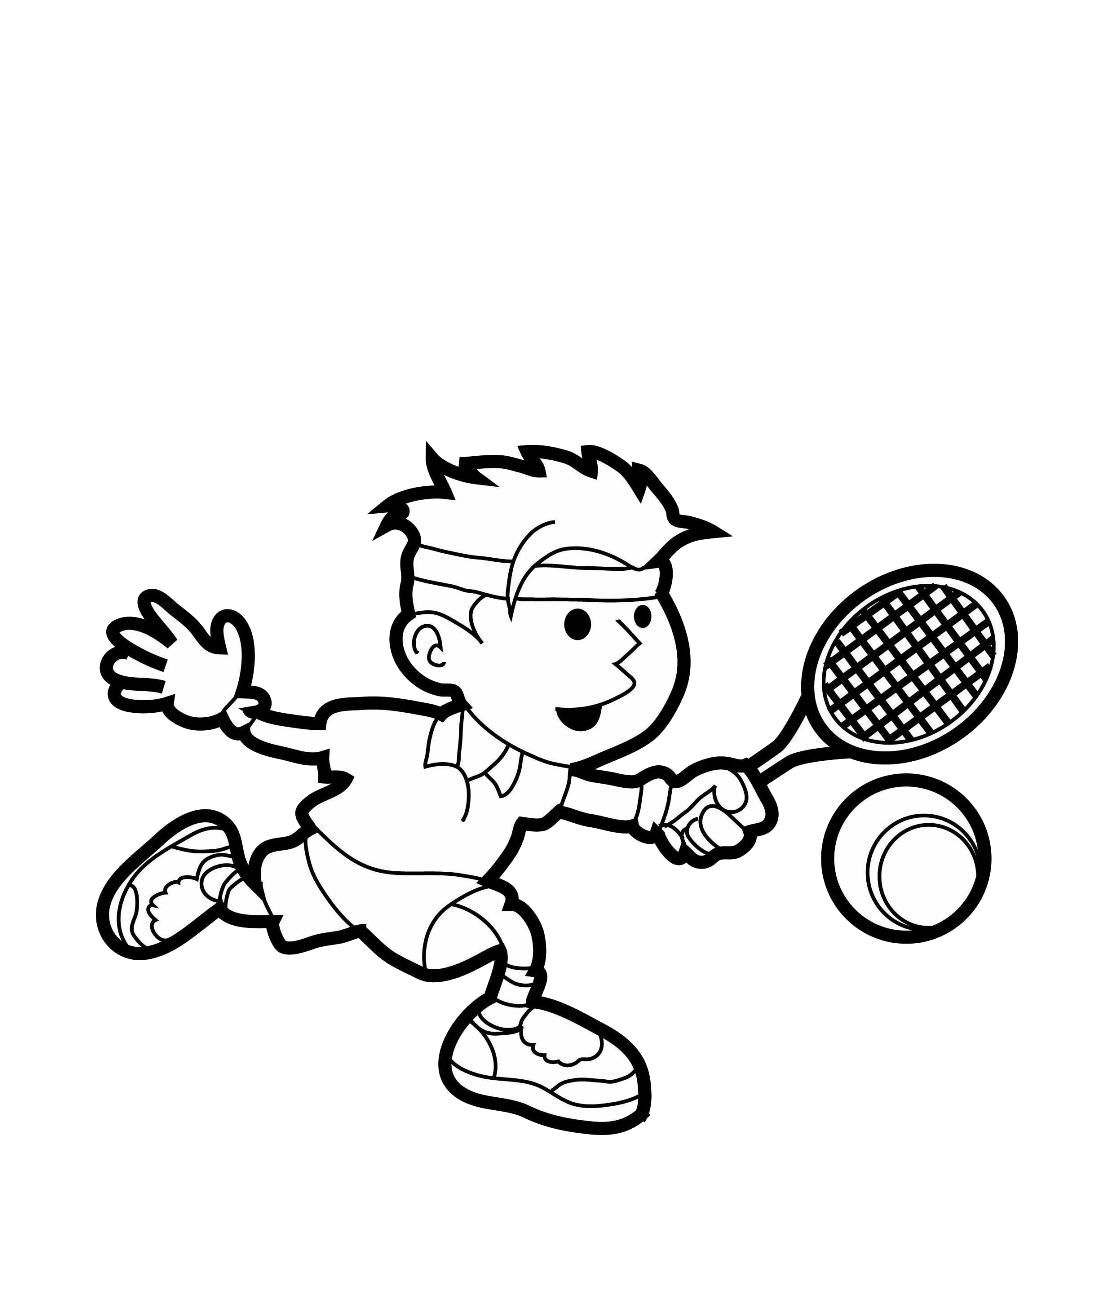 Play Tennis | Coloring pages, Sports drawings, Coloring ...